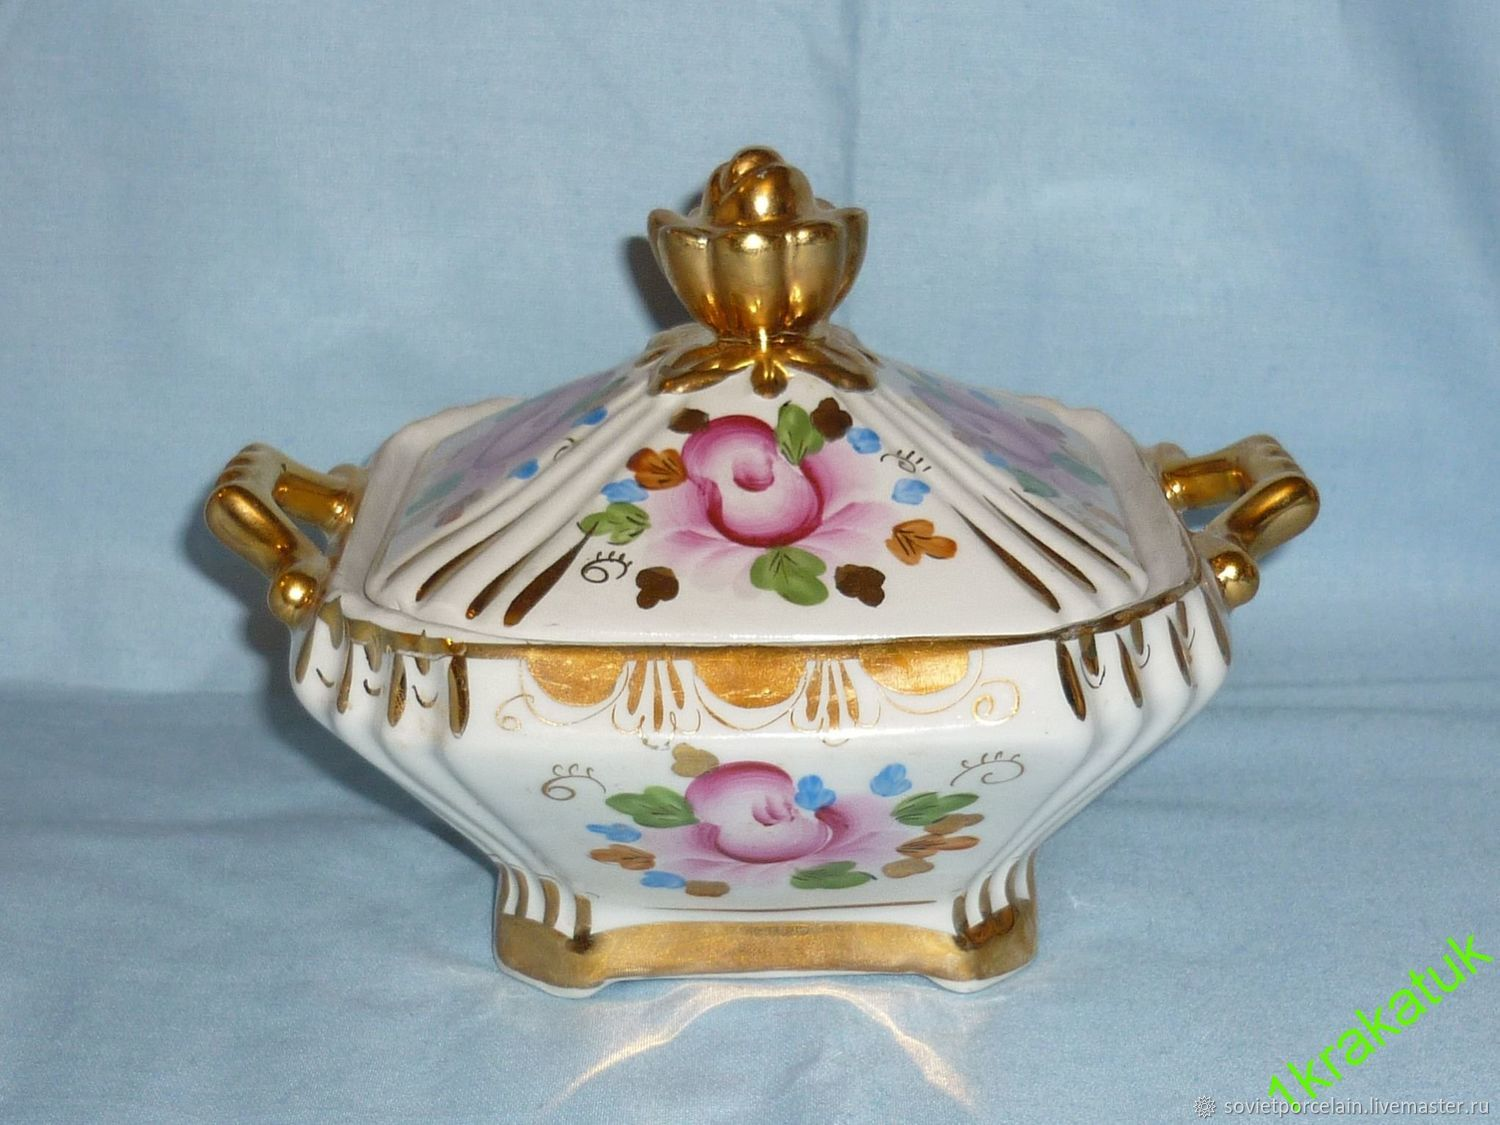 Vintage Kitchenware. Livemaster - handmade. Buy SUGAR bowl or CANDY dish WITH LID, old GZHEL, hand-painted!.